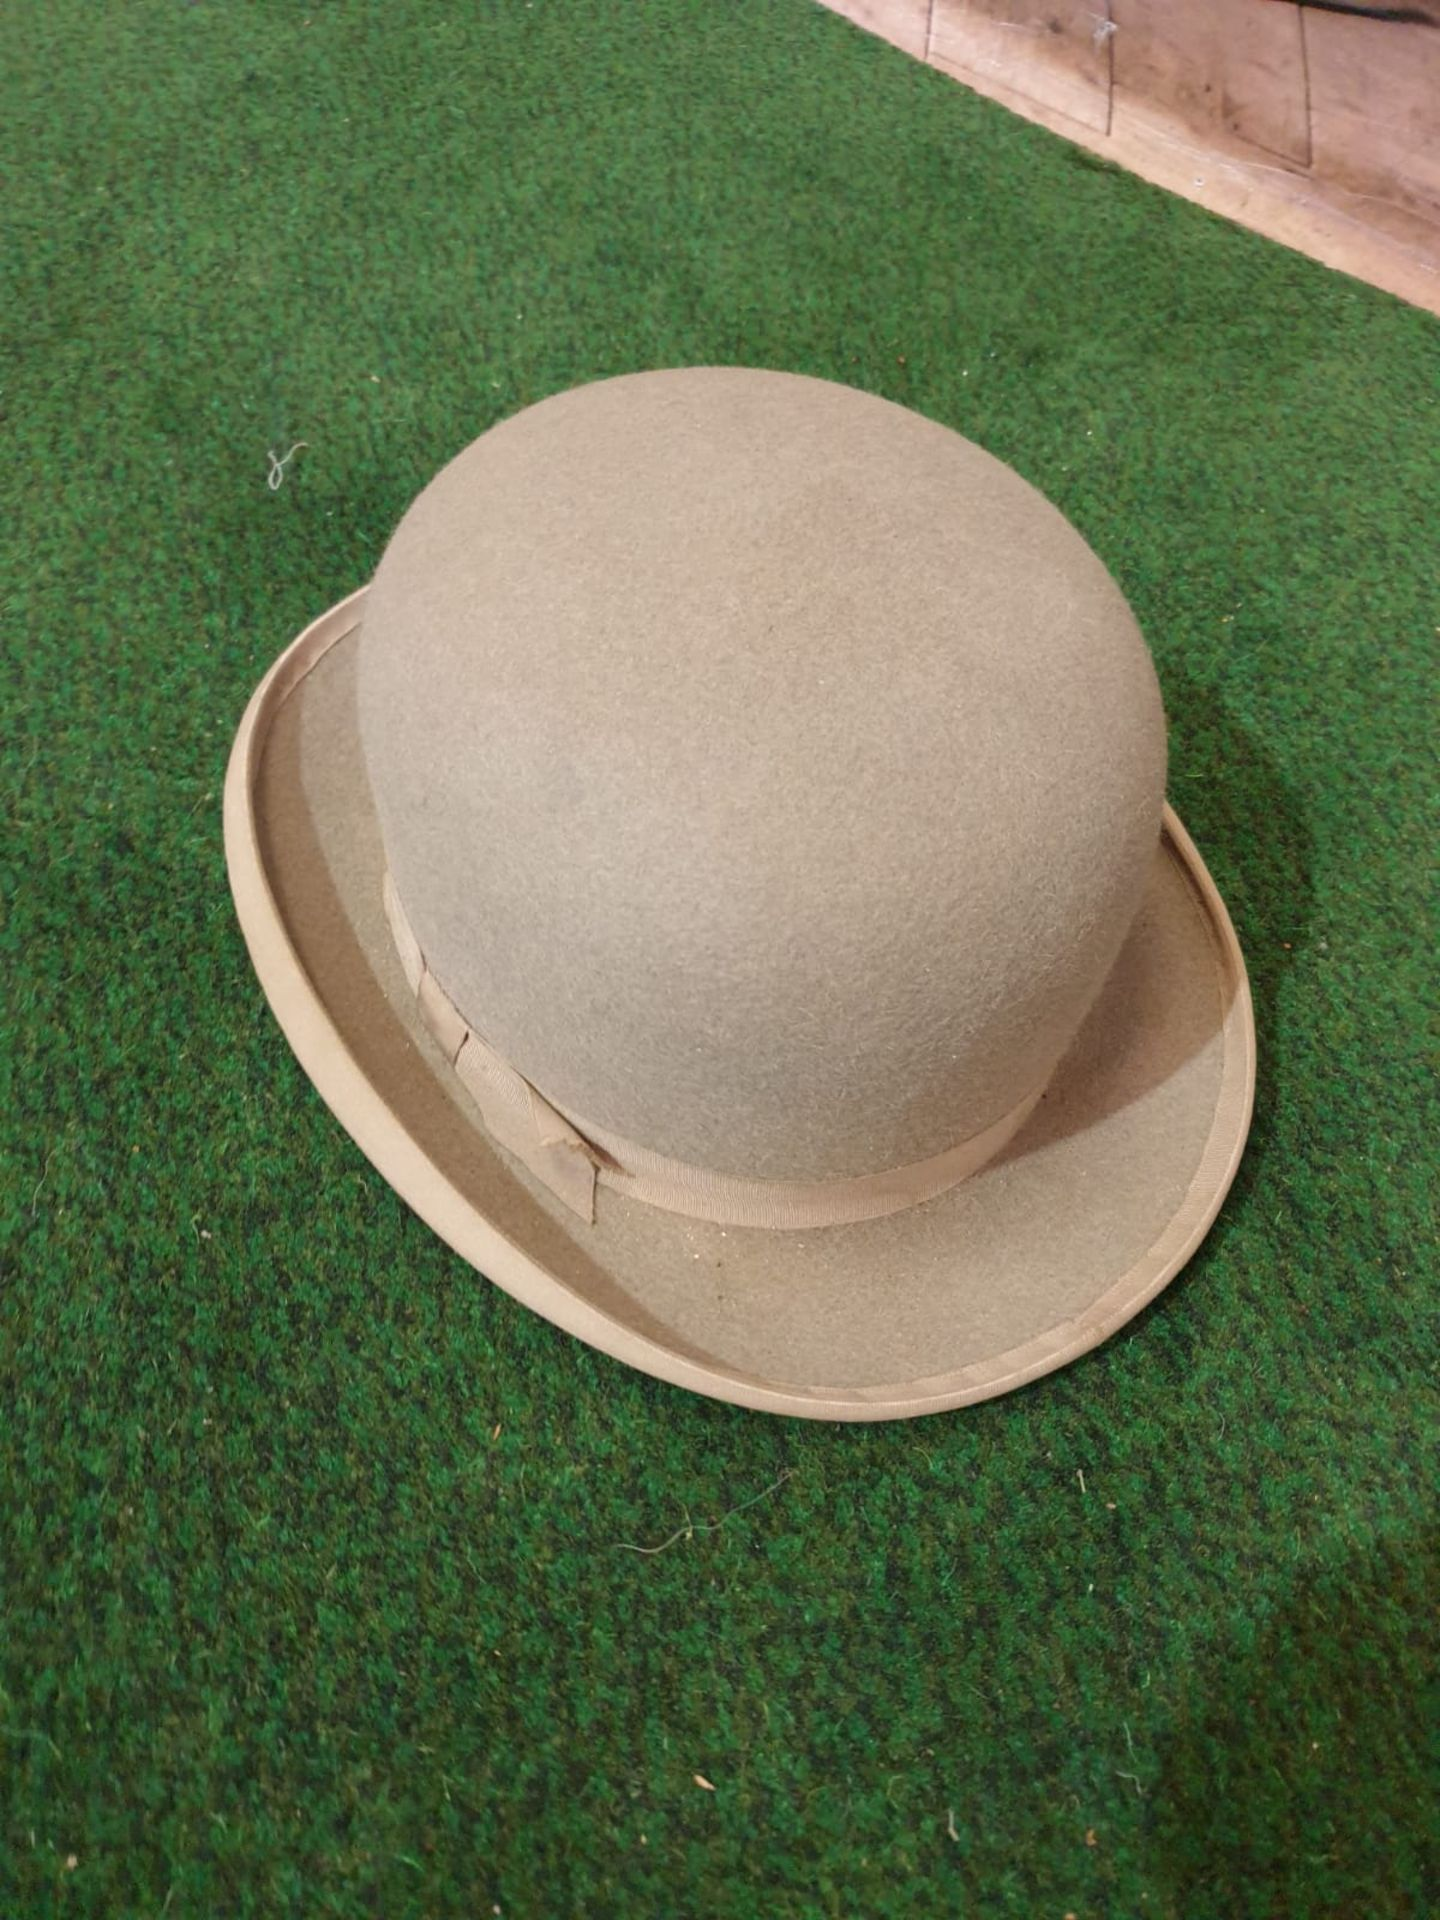 A grey bowler hat by Lock & Co London in Harmans card box - Image 3 of 5